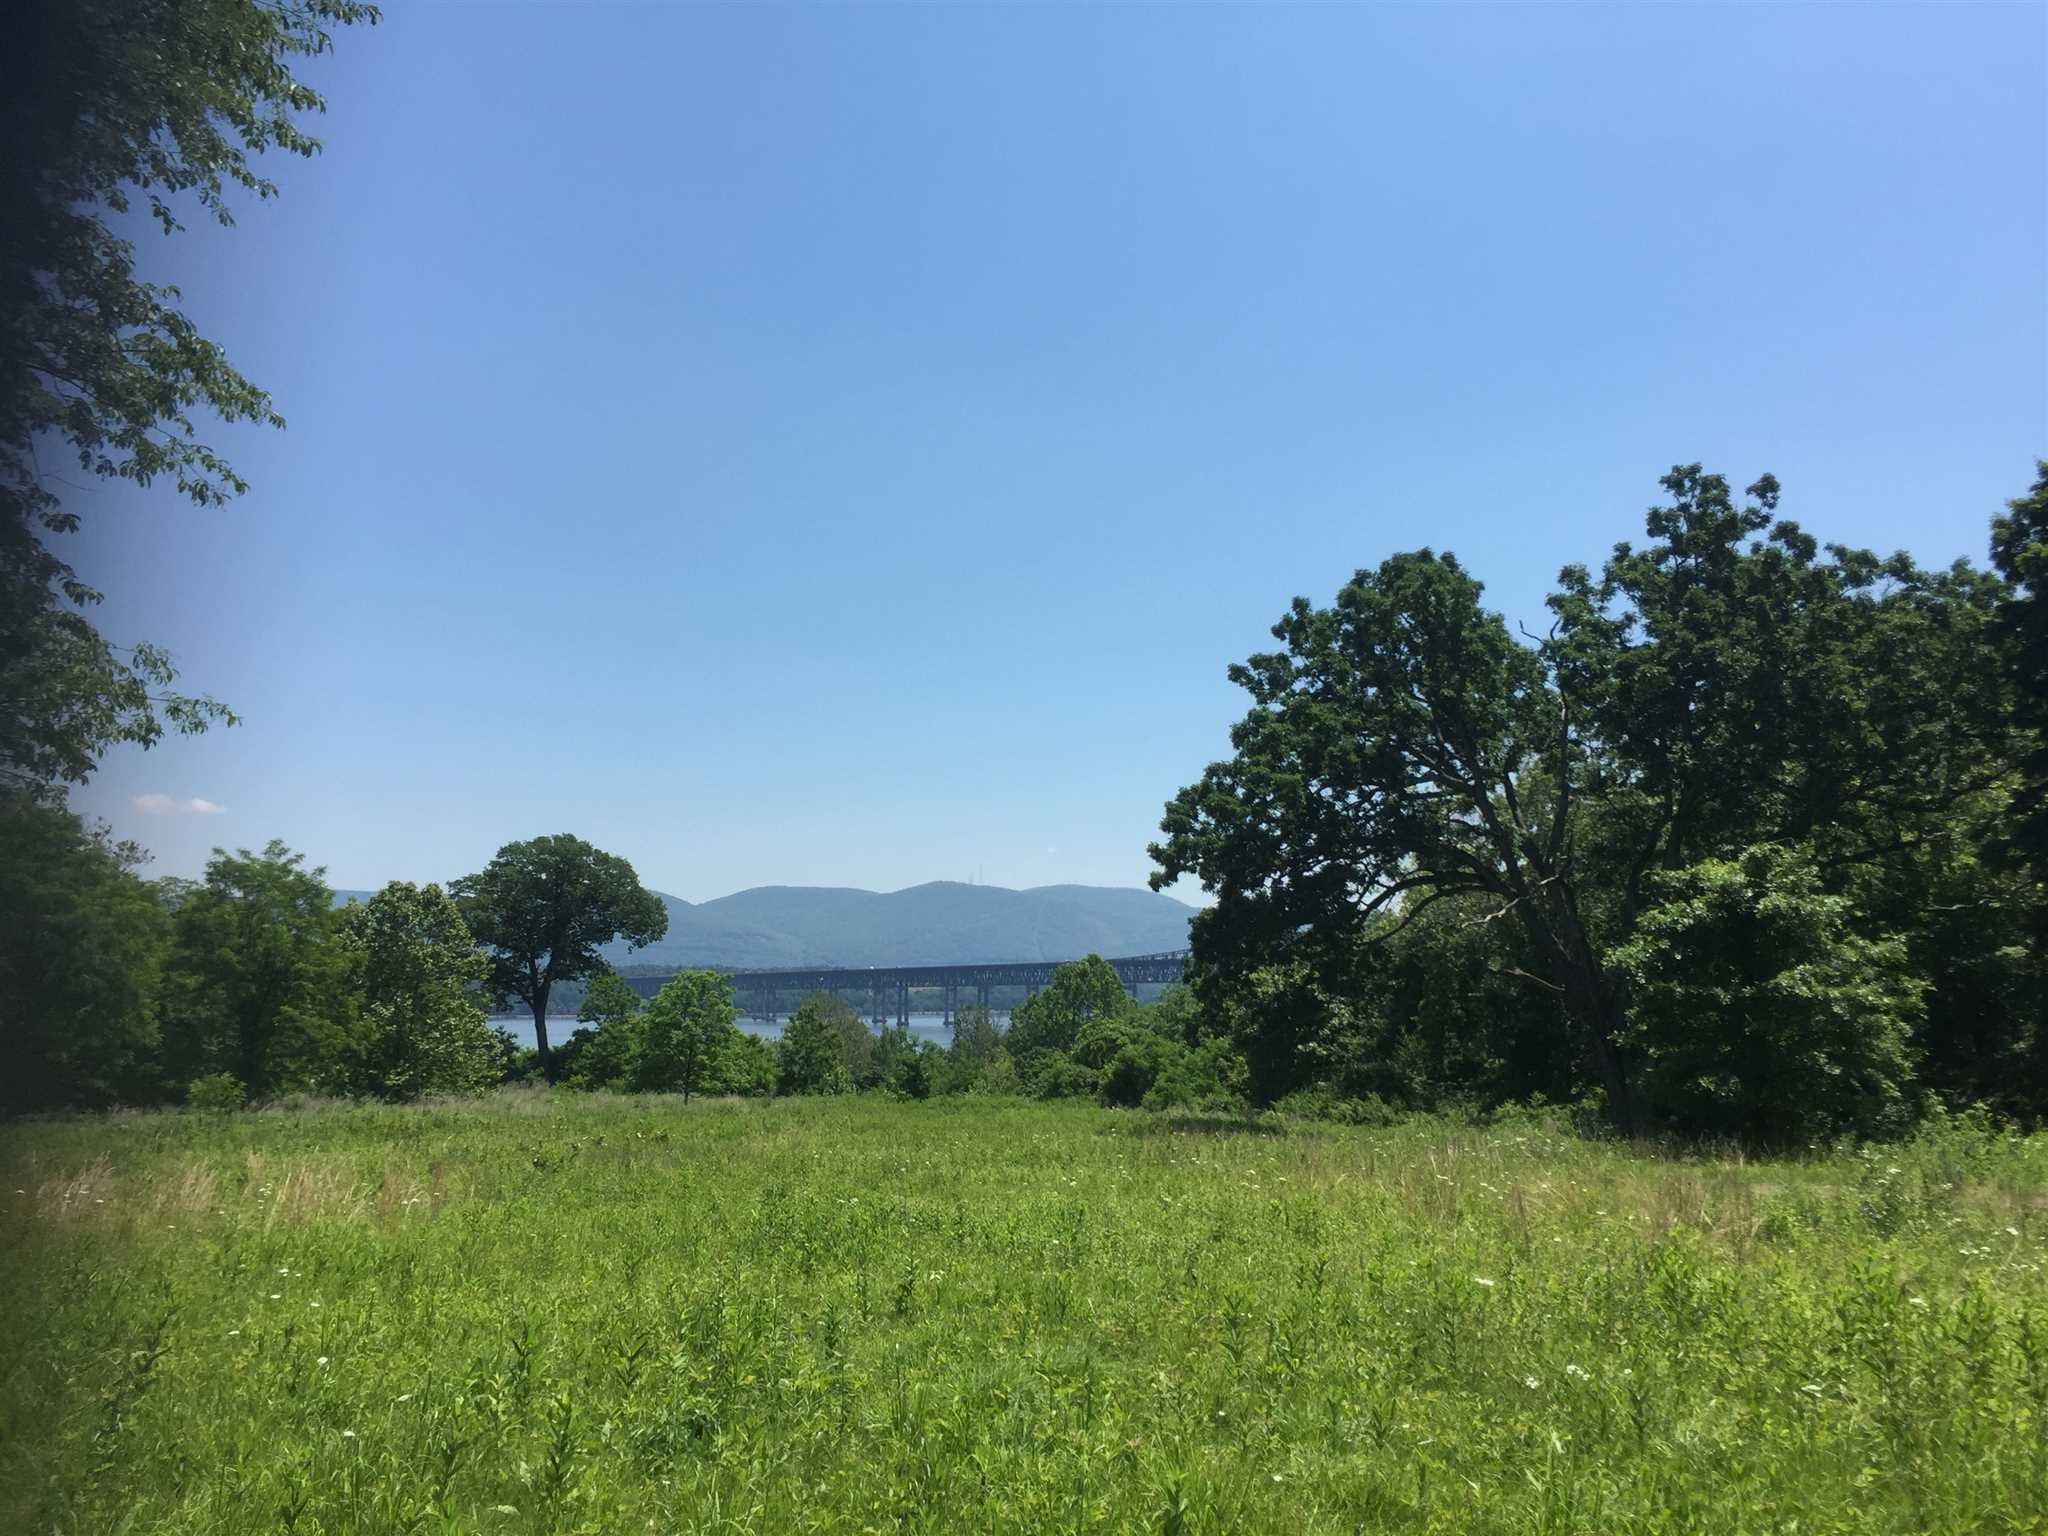 Land for Sale at 586 GRAND 586 GRAND Newburgh, New York 12550 United States